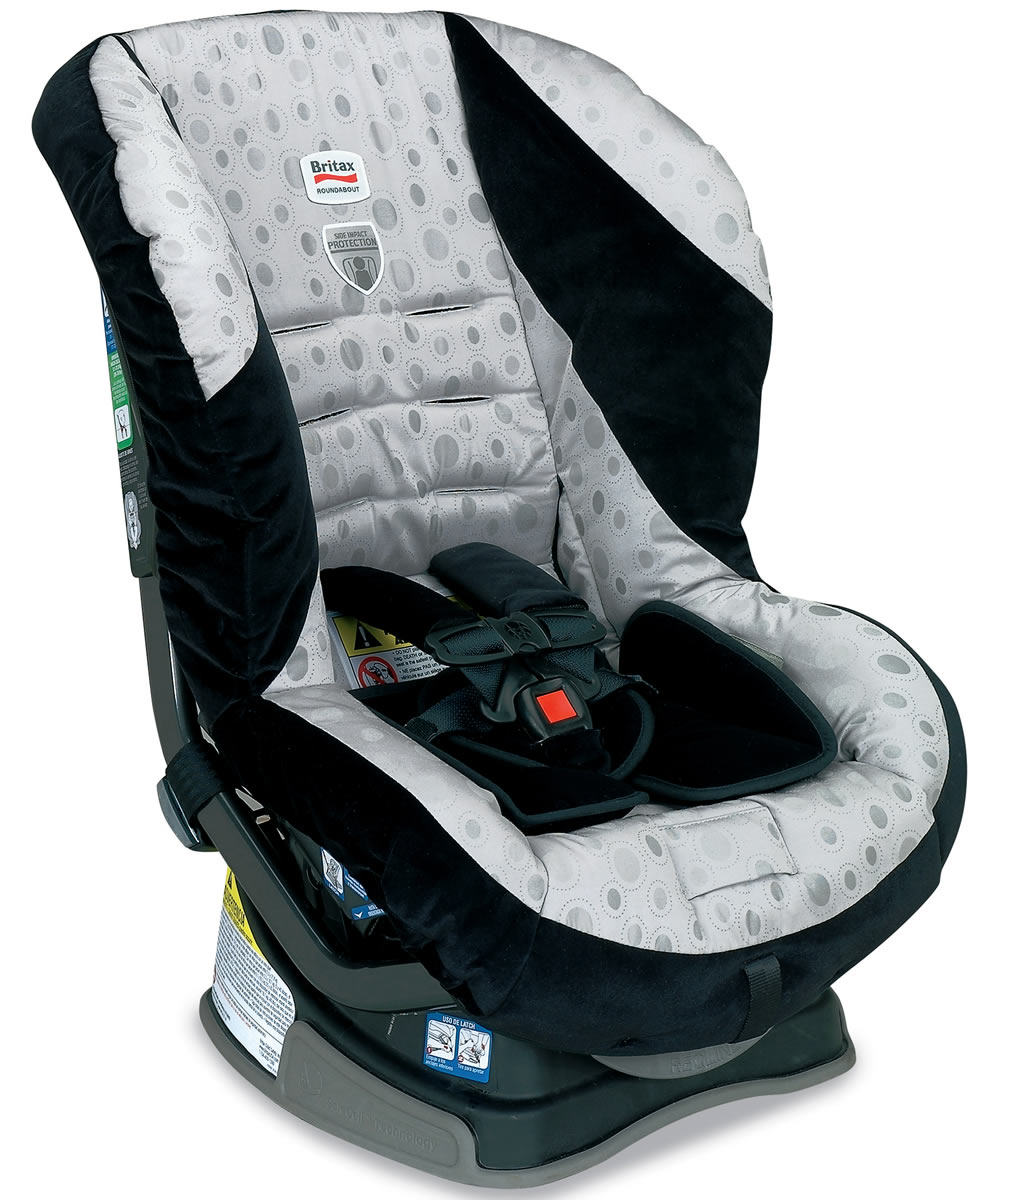 britax roundabout car seat lookup beforebuying. Black Bedroom Furniture Sets. Home Design Ideas